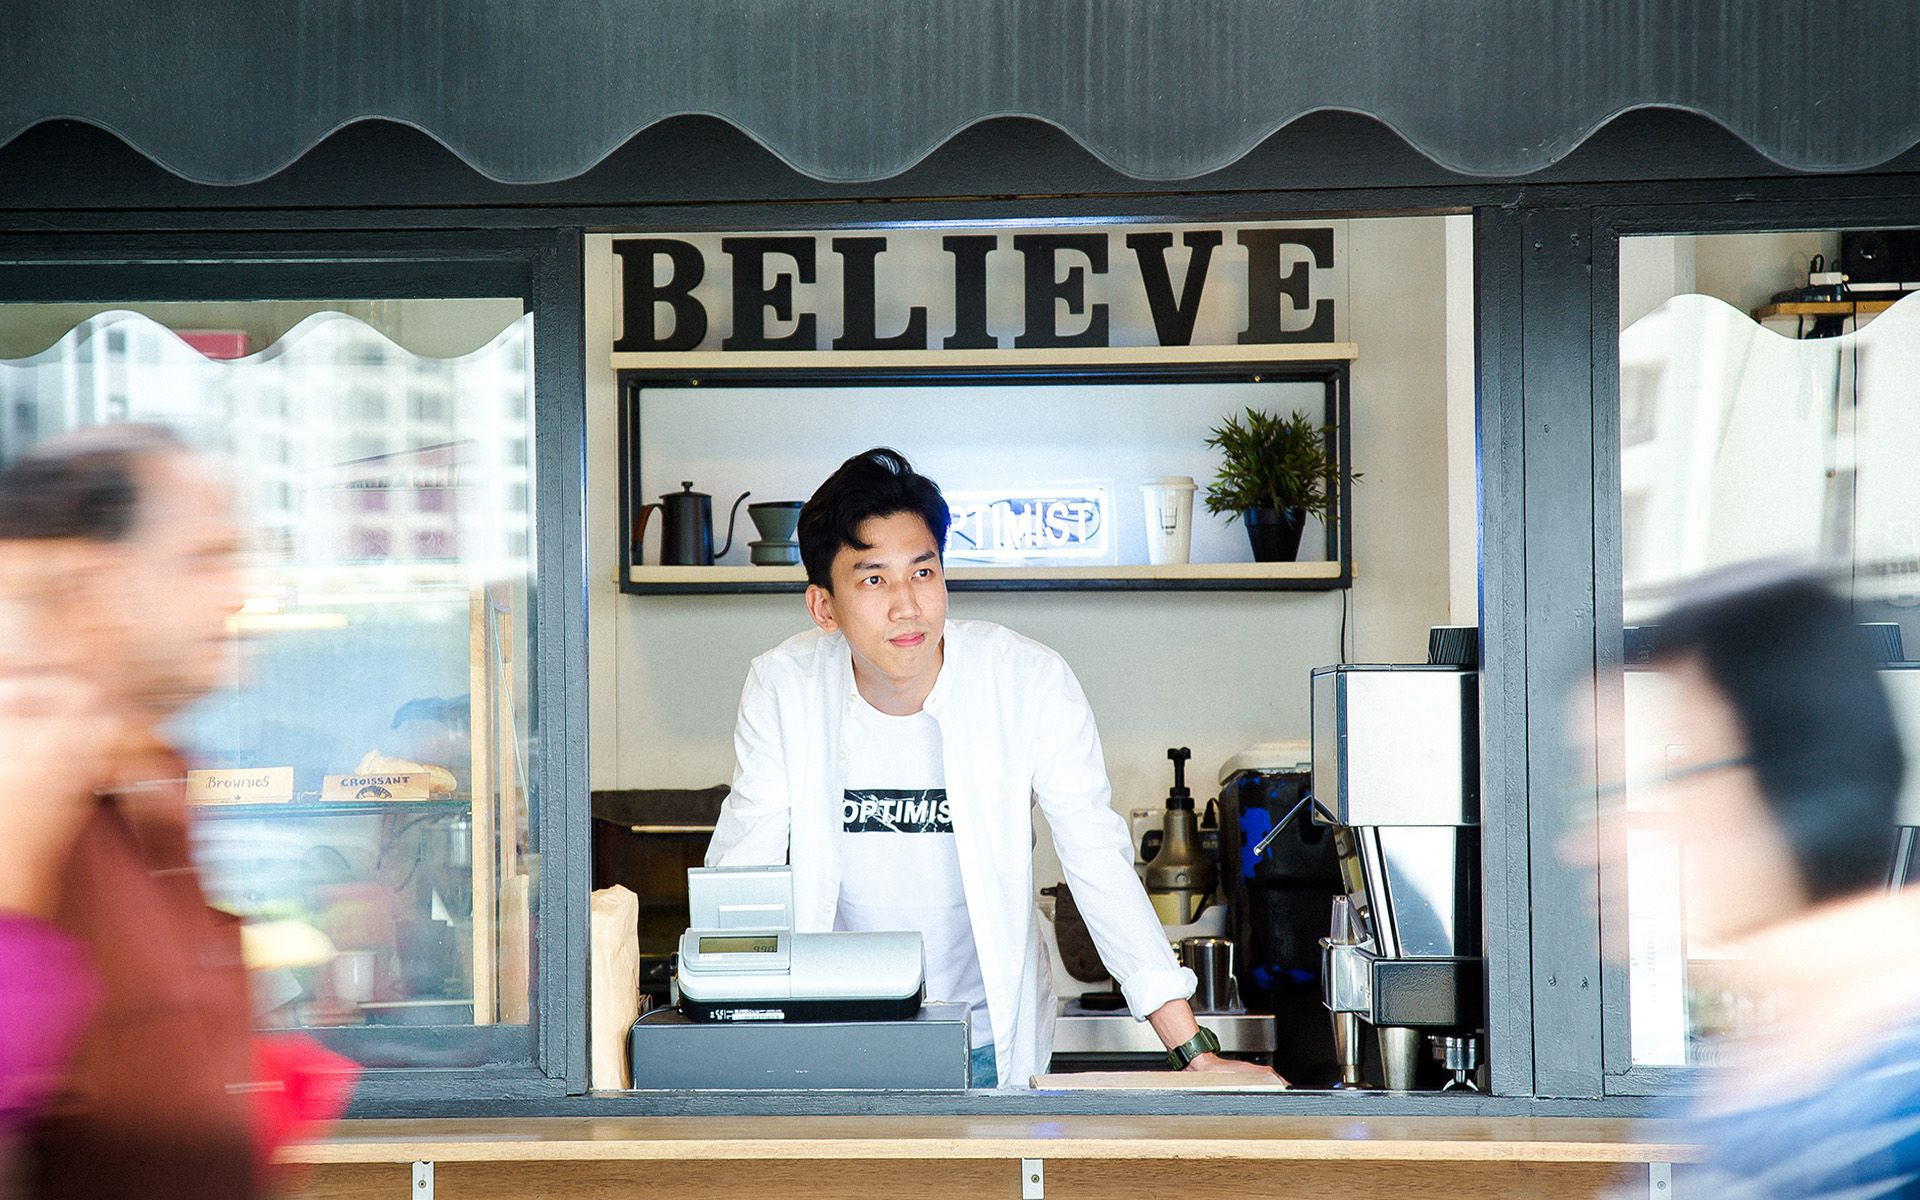 Trev Ng, Chief Executive Optimist Of The Optimist Coffee Chain, On Spreading Positivity